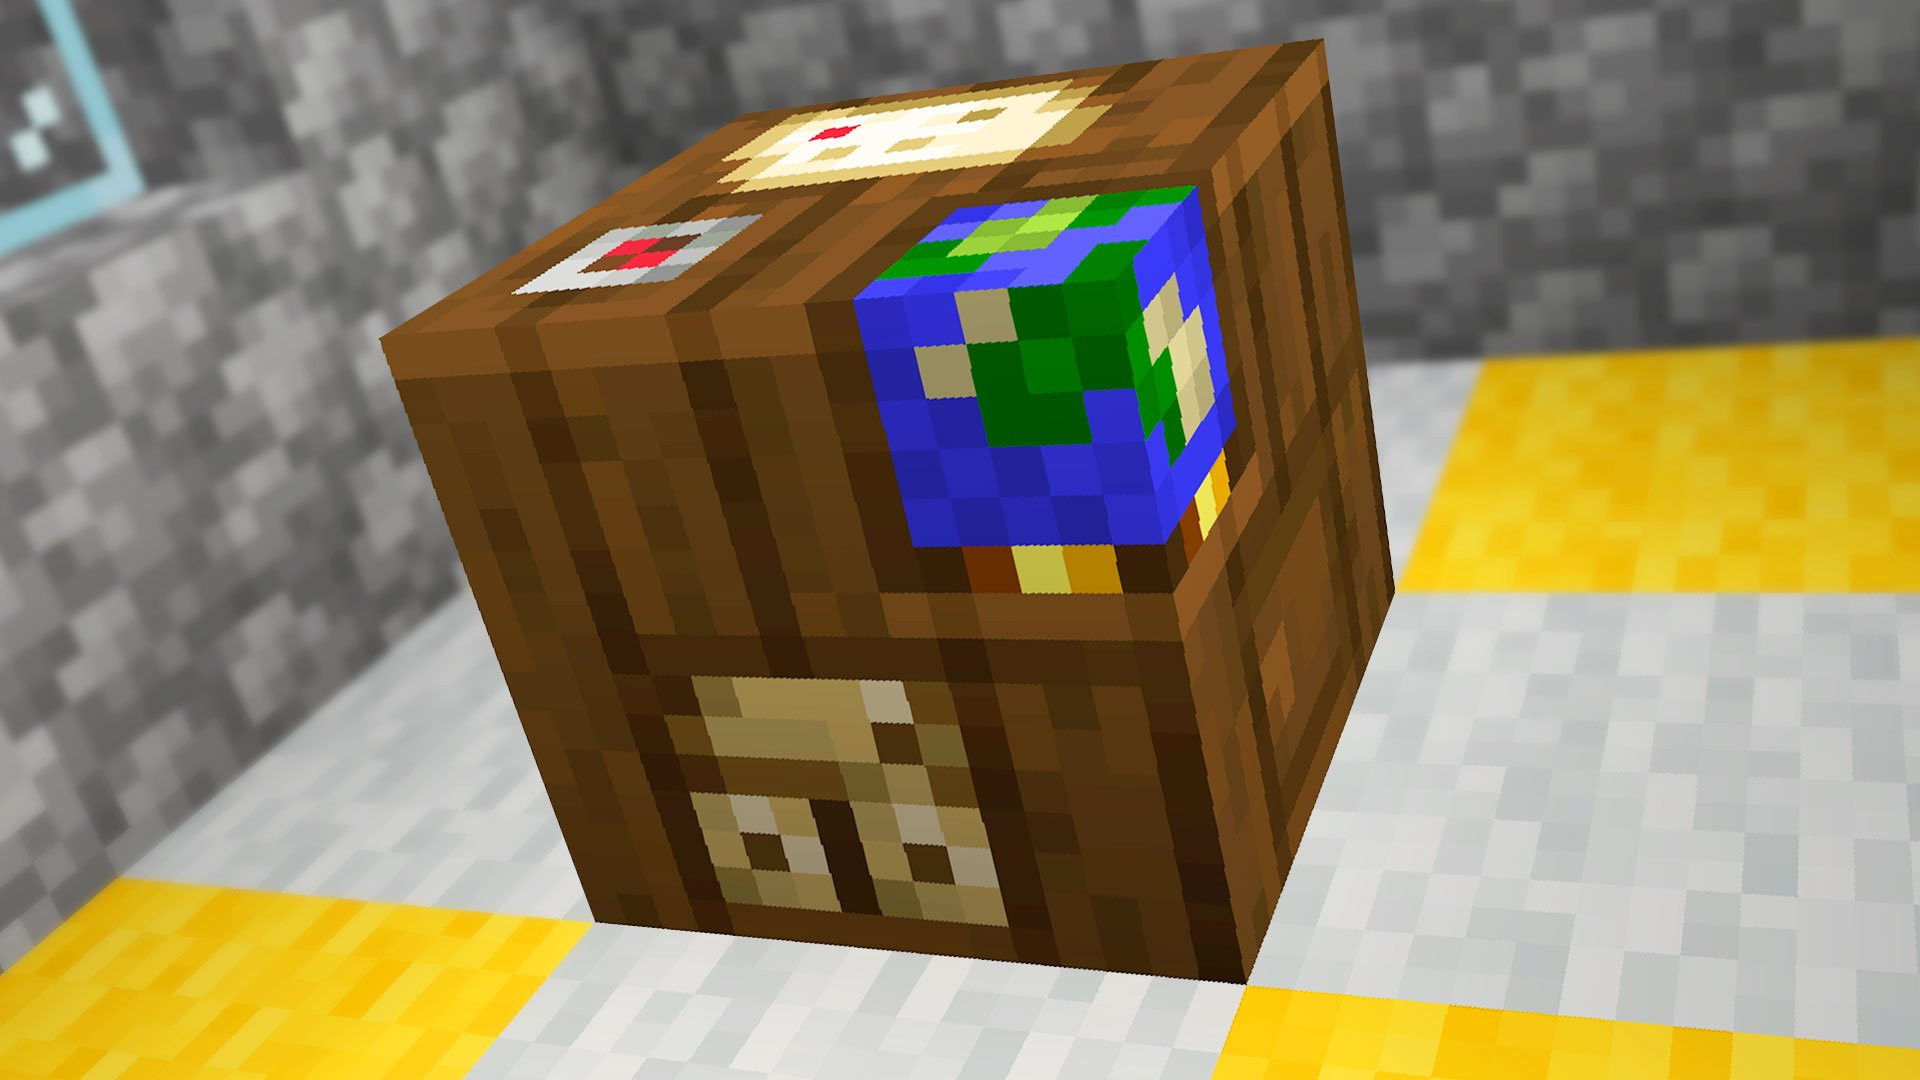 Cartography Table Minecraft: What to Know About the Job Site Block